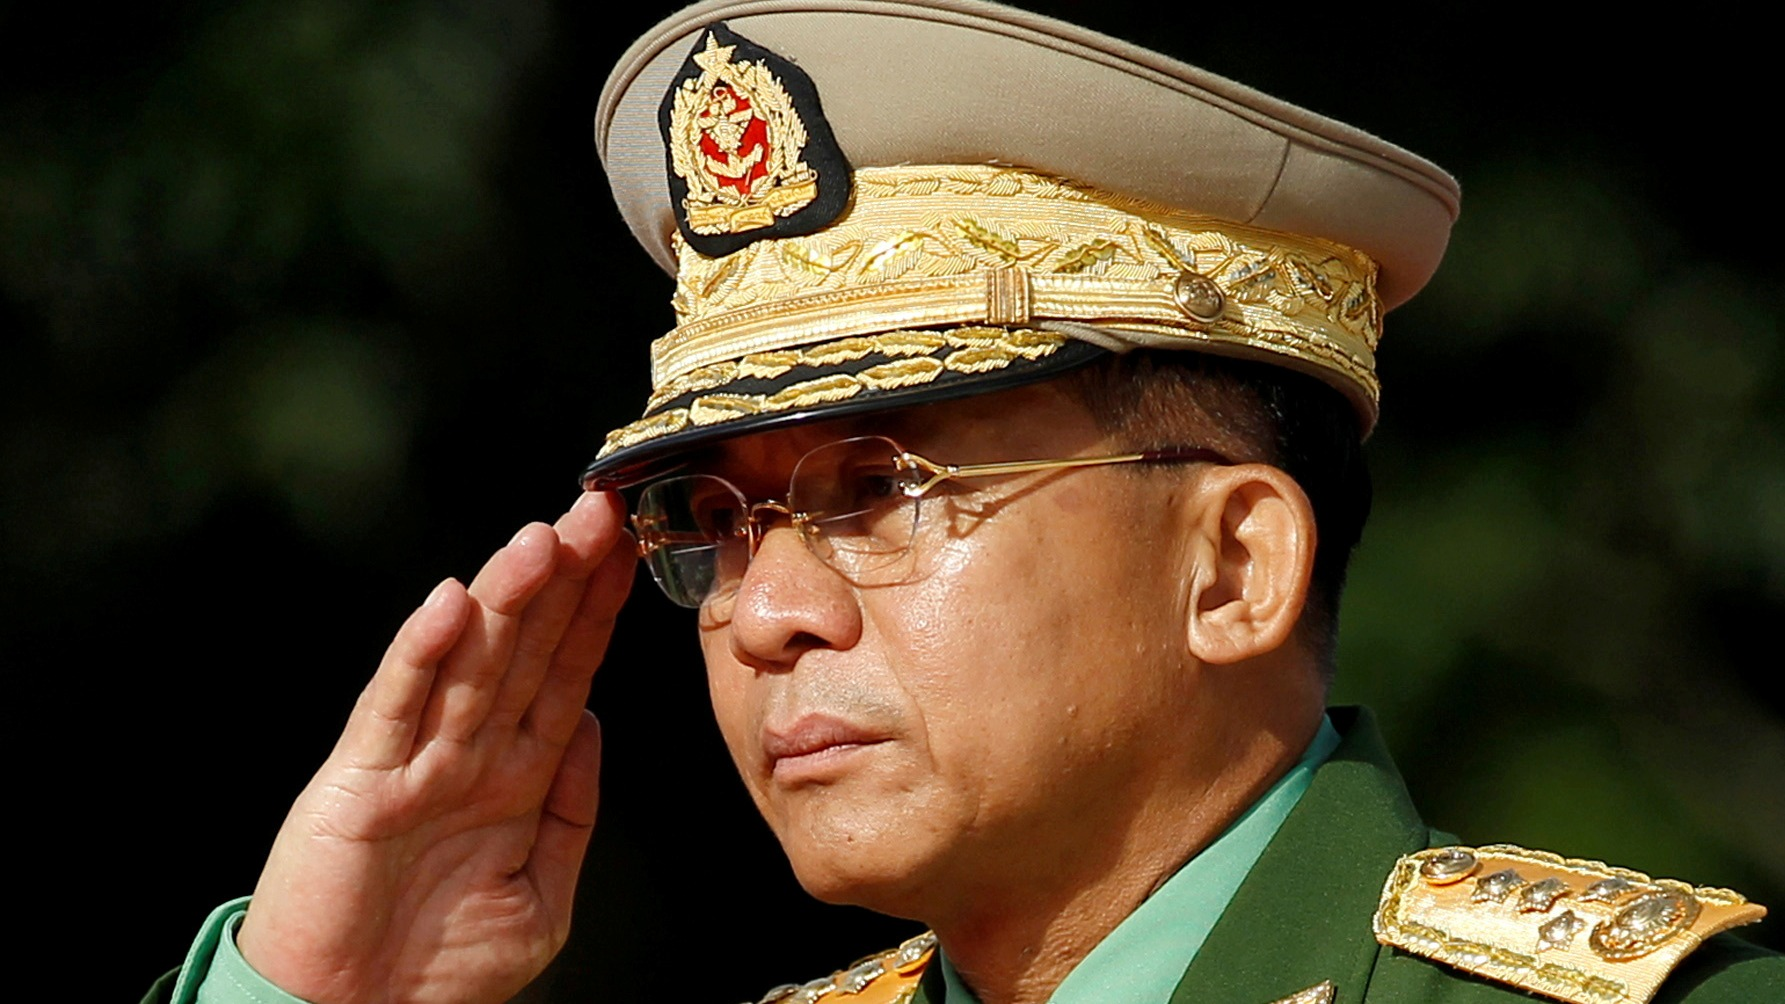 Myanmar coup latest: Junta chief to attend ASEAN summit, Thai official says